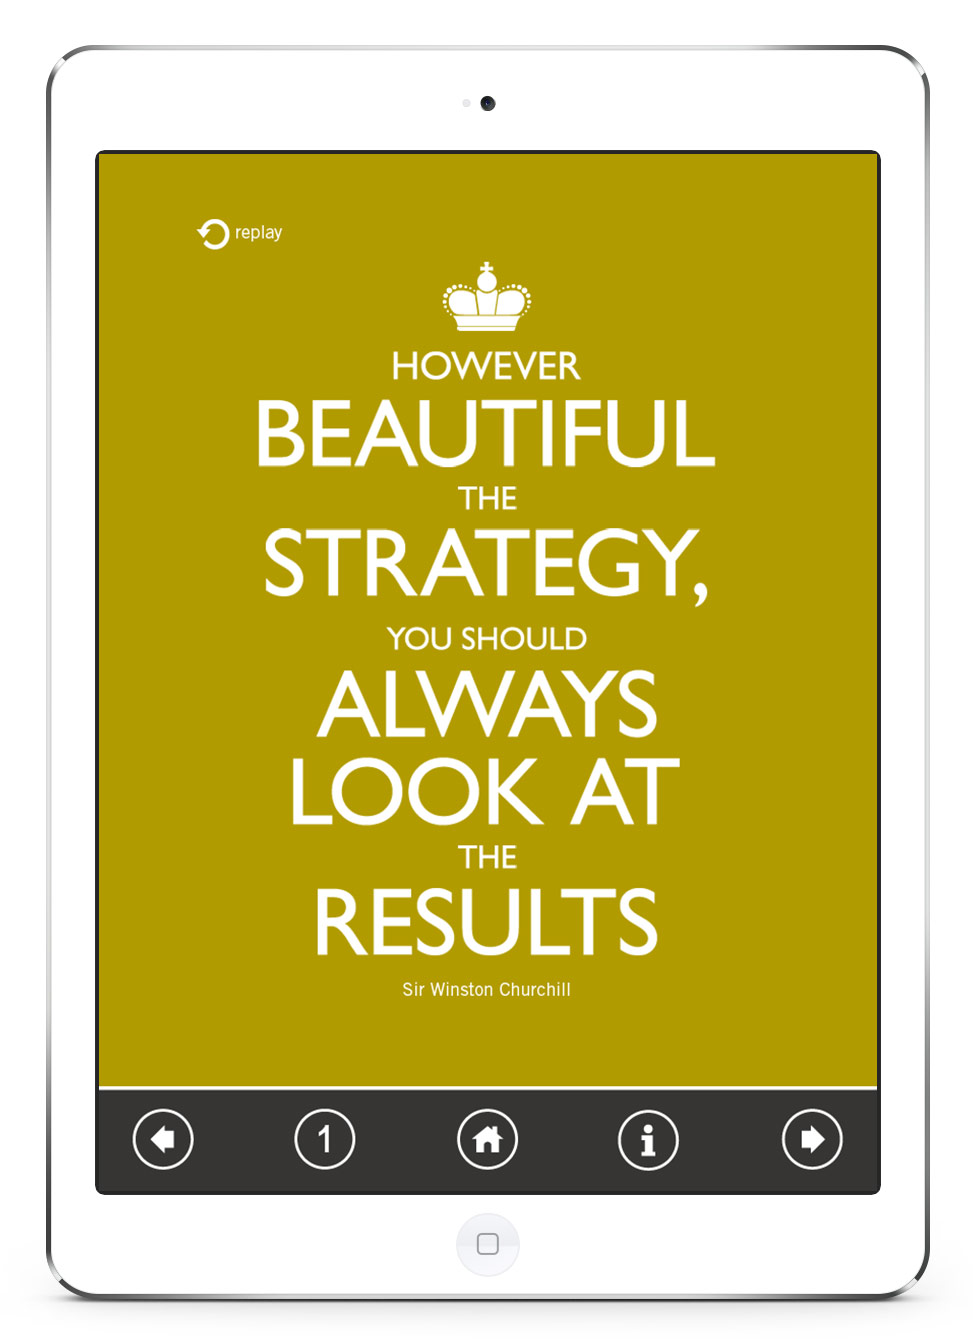 dunnhumby Annual Report App Game Screen